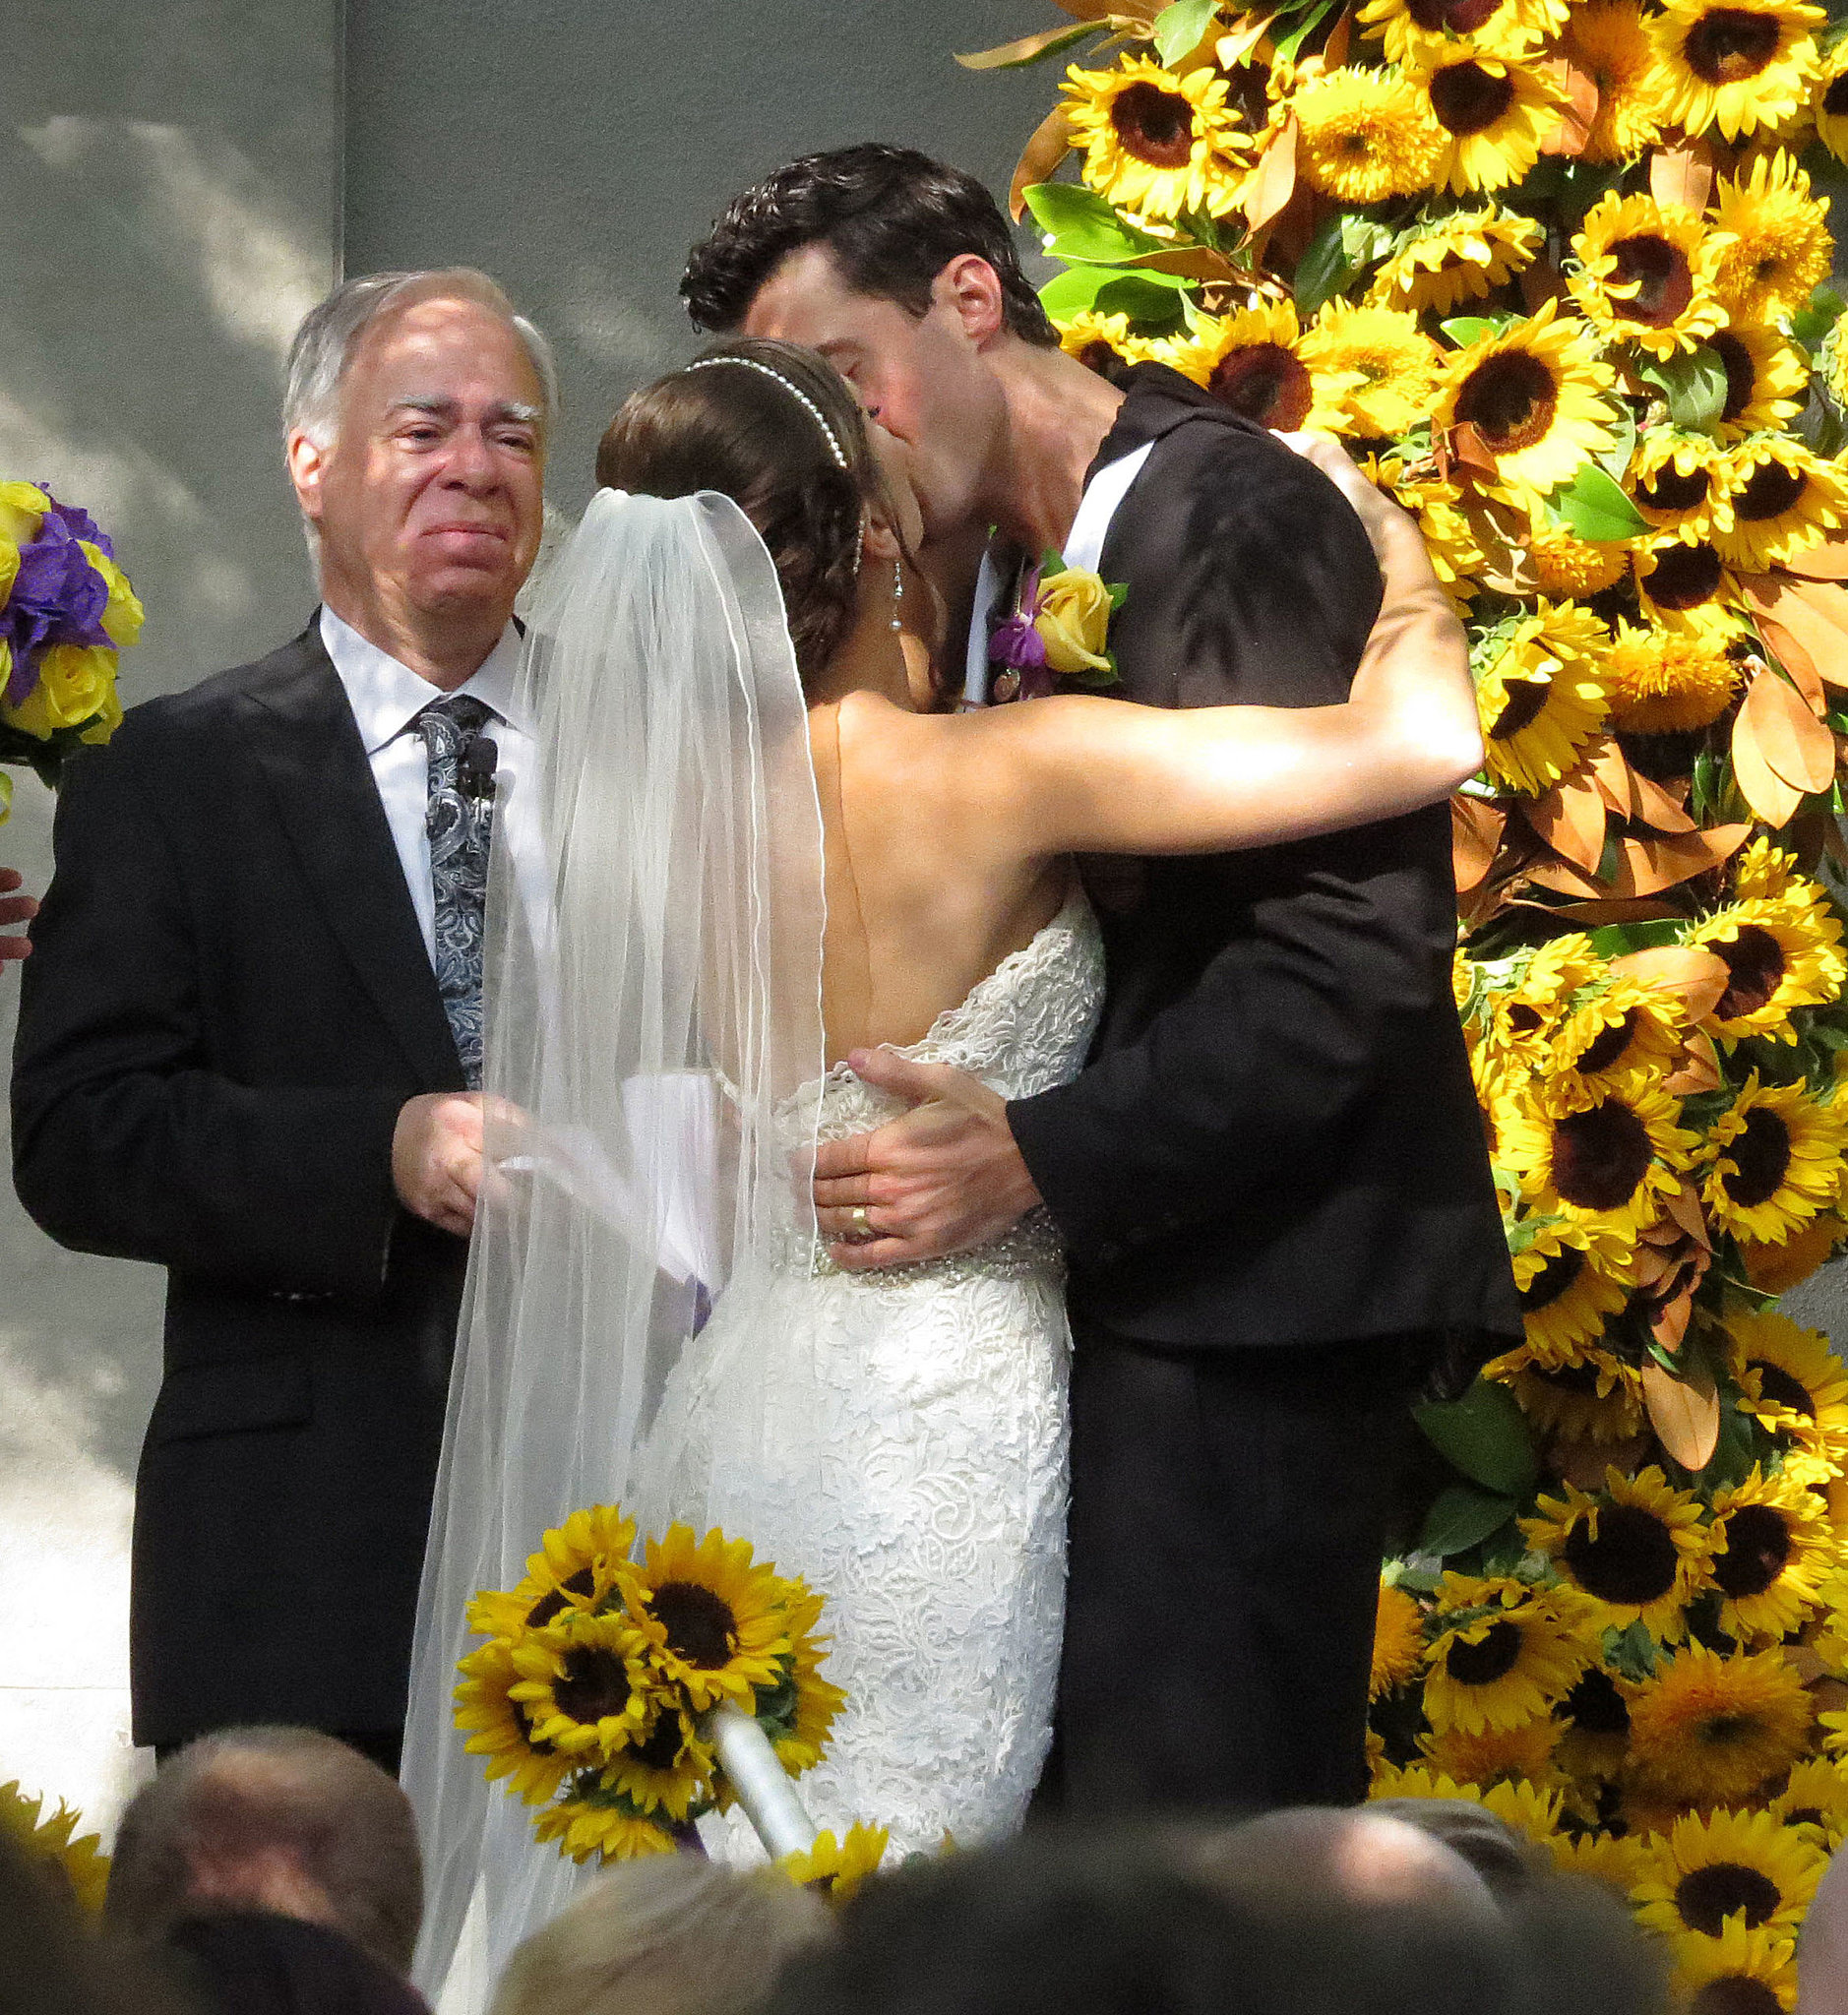 diana degarmo wedding - photo #11